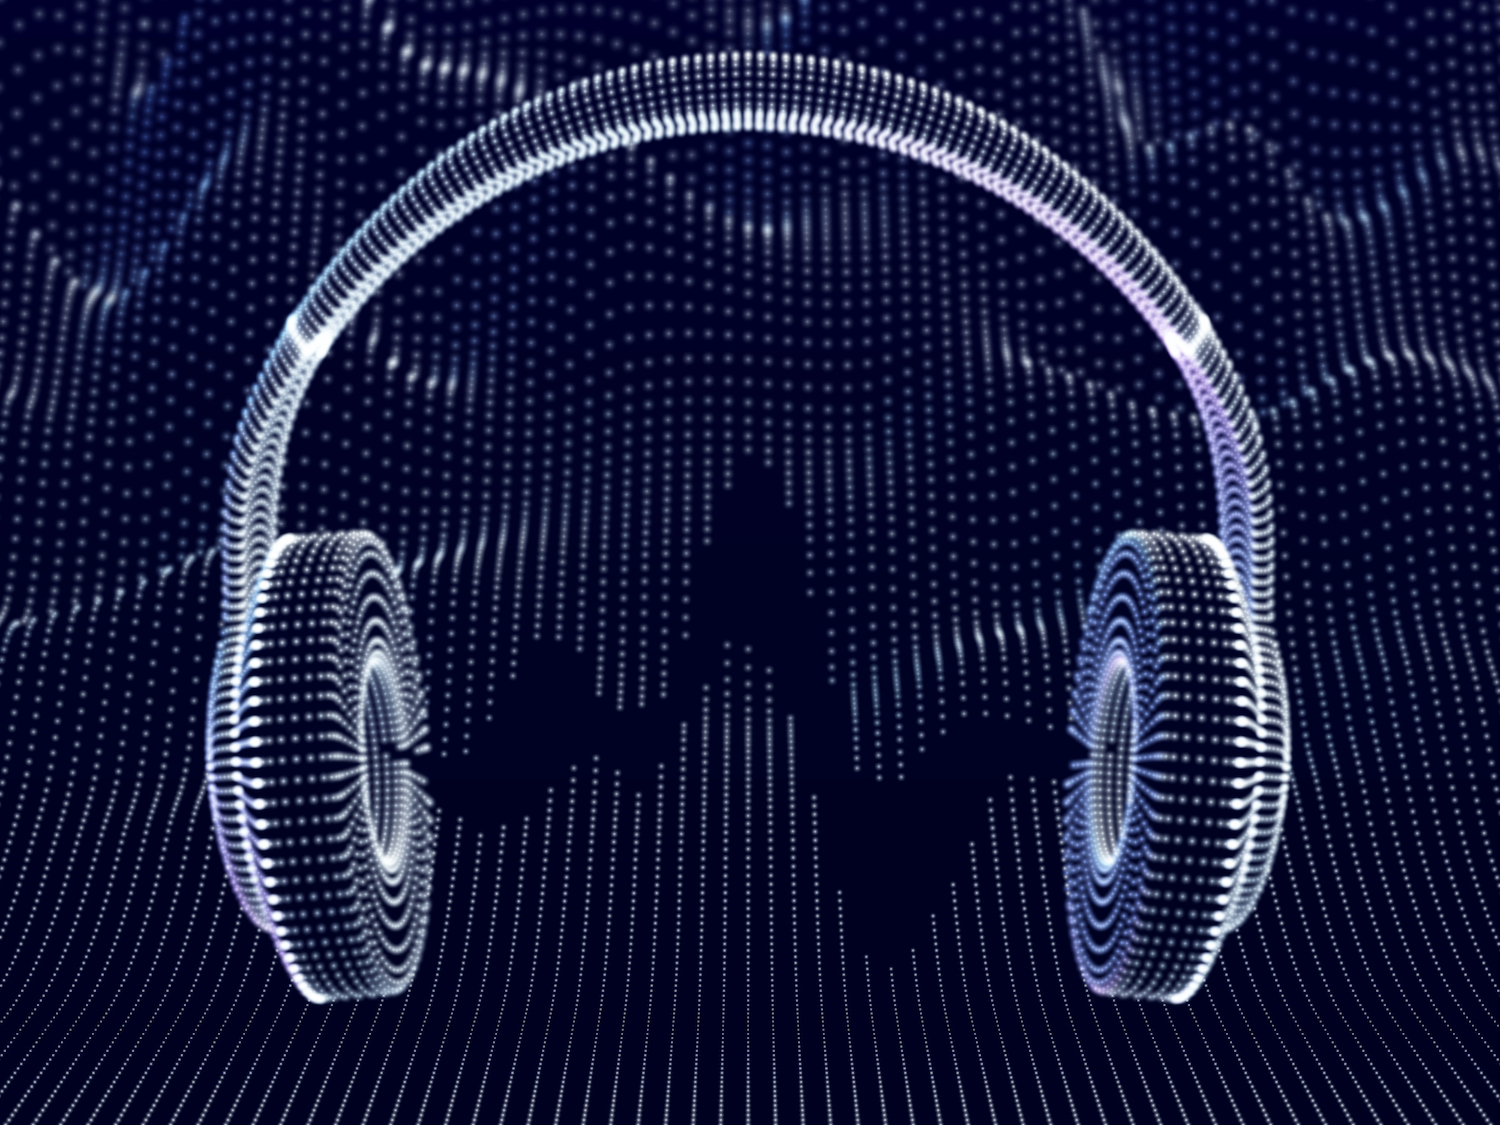 3D headphones with sound waves on a dark background.  The concept of listening to electronic music and digital audio.  Abstract Visualization of Digital Sound Waves and Modern Art.  Vector illustration.  (3D headphones with sound waves on a dark background. Concept